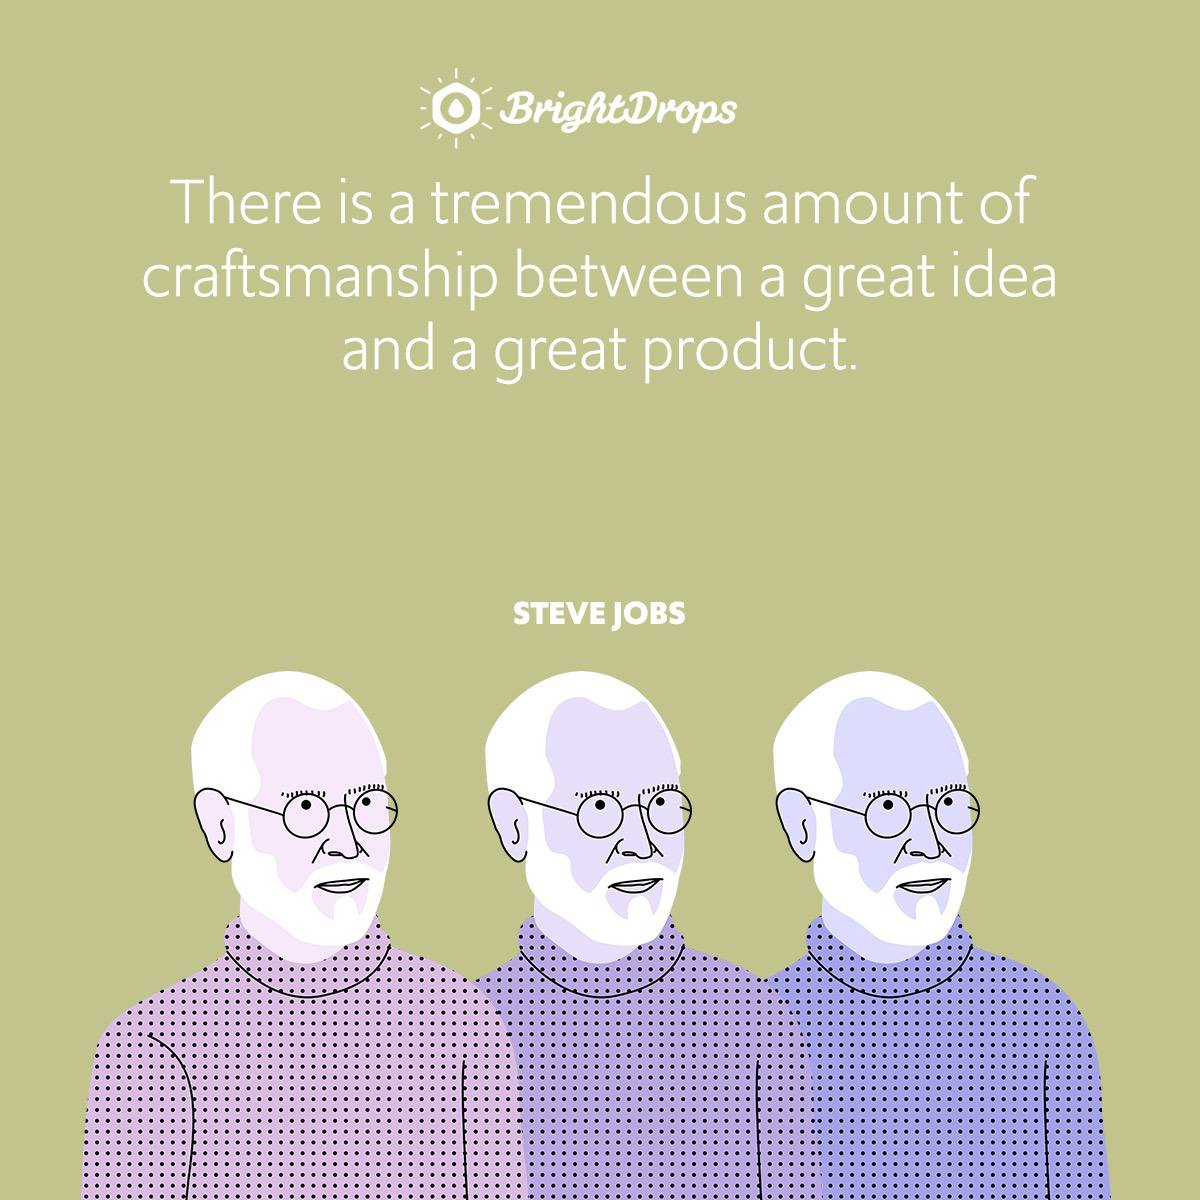 There is a tremendous amount of craftsmanship between a great idea and a great product.